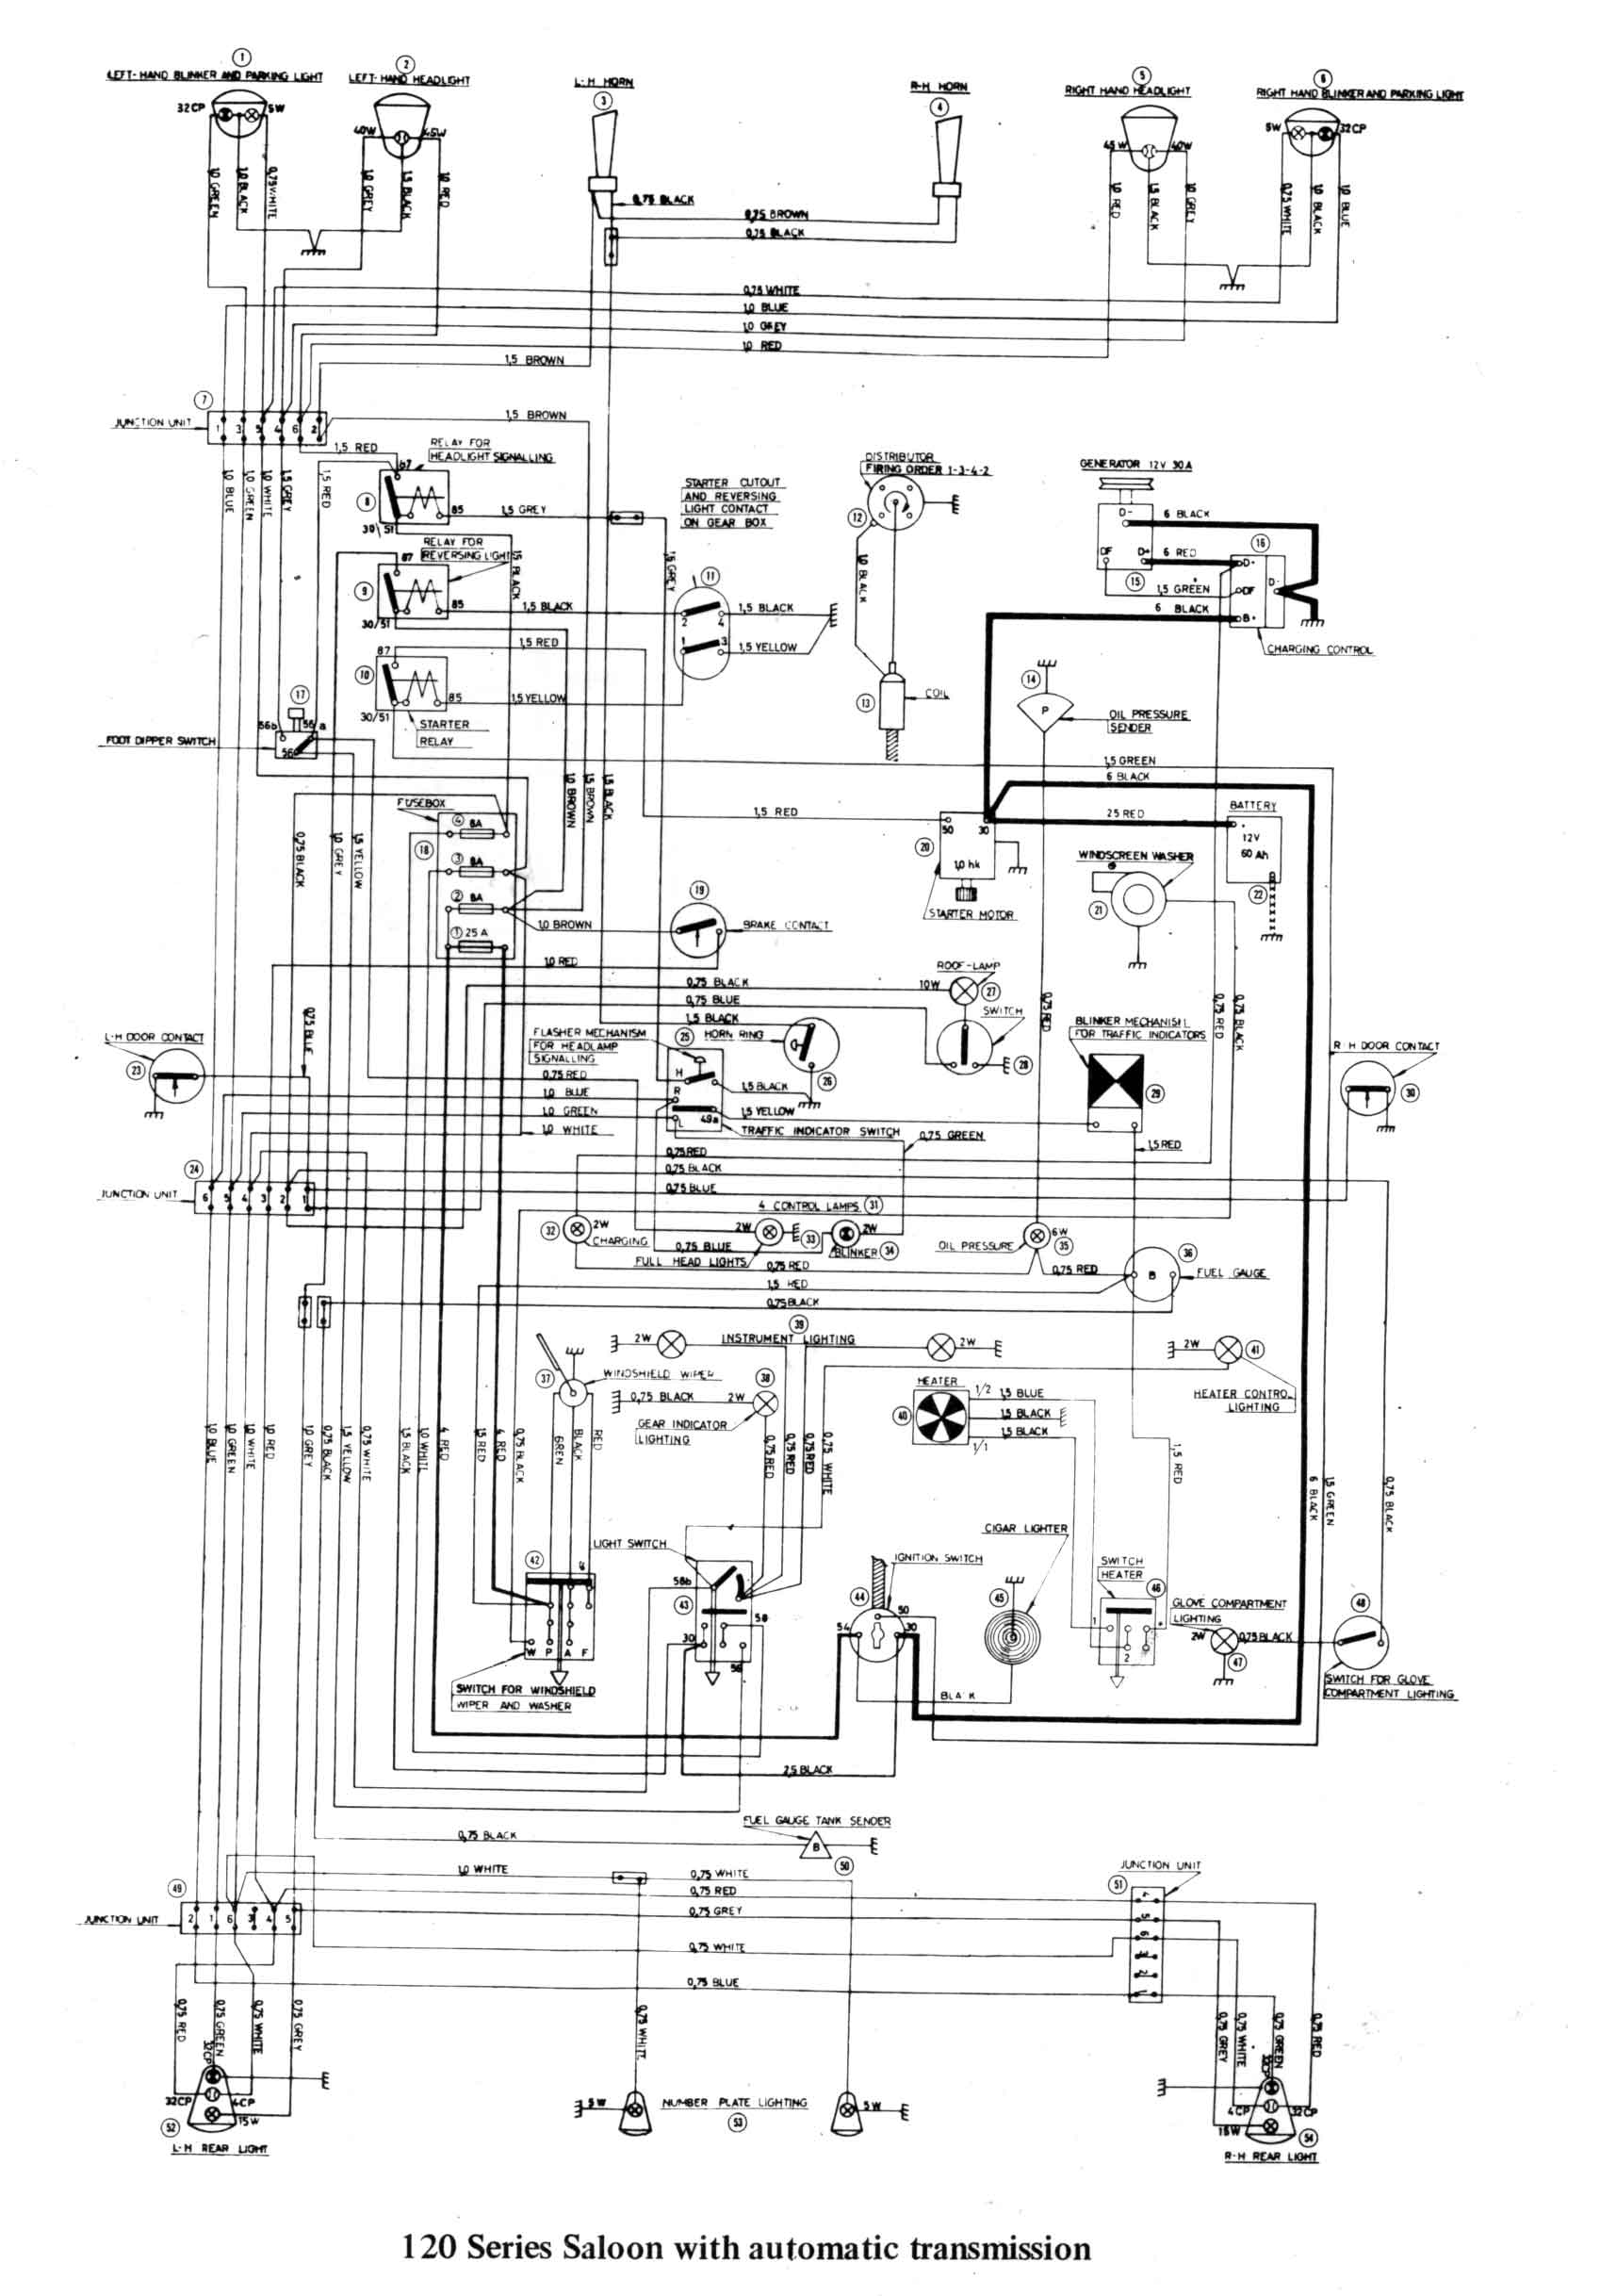 s40 radio wiring 2000 volvo s40 radio wiring diagram wiring diagrams and schematics wiring diagram volvo s40 1997